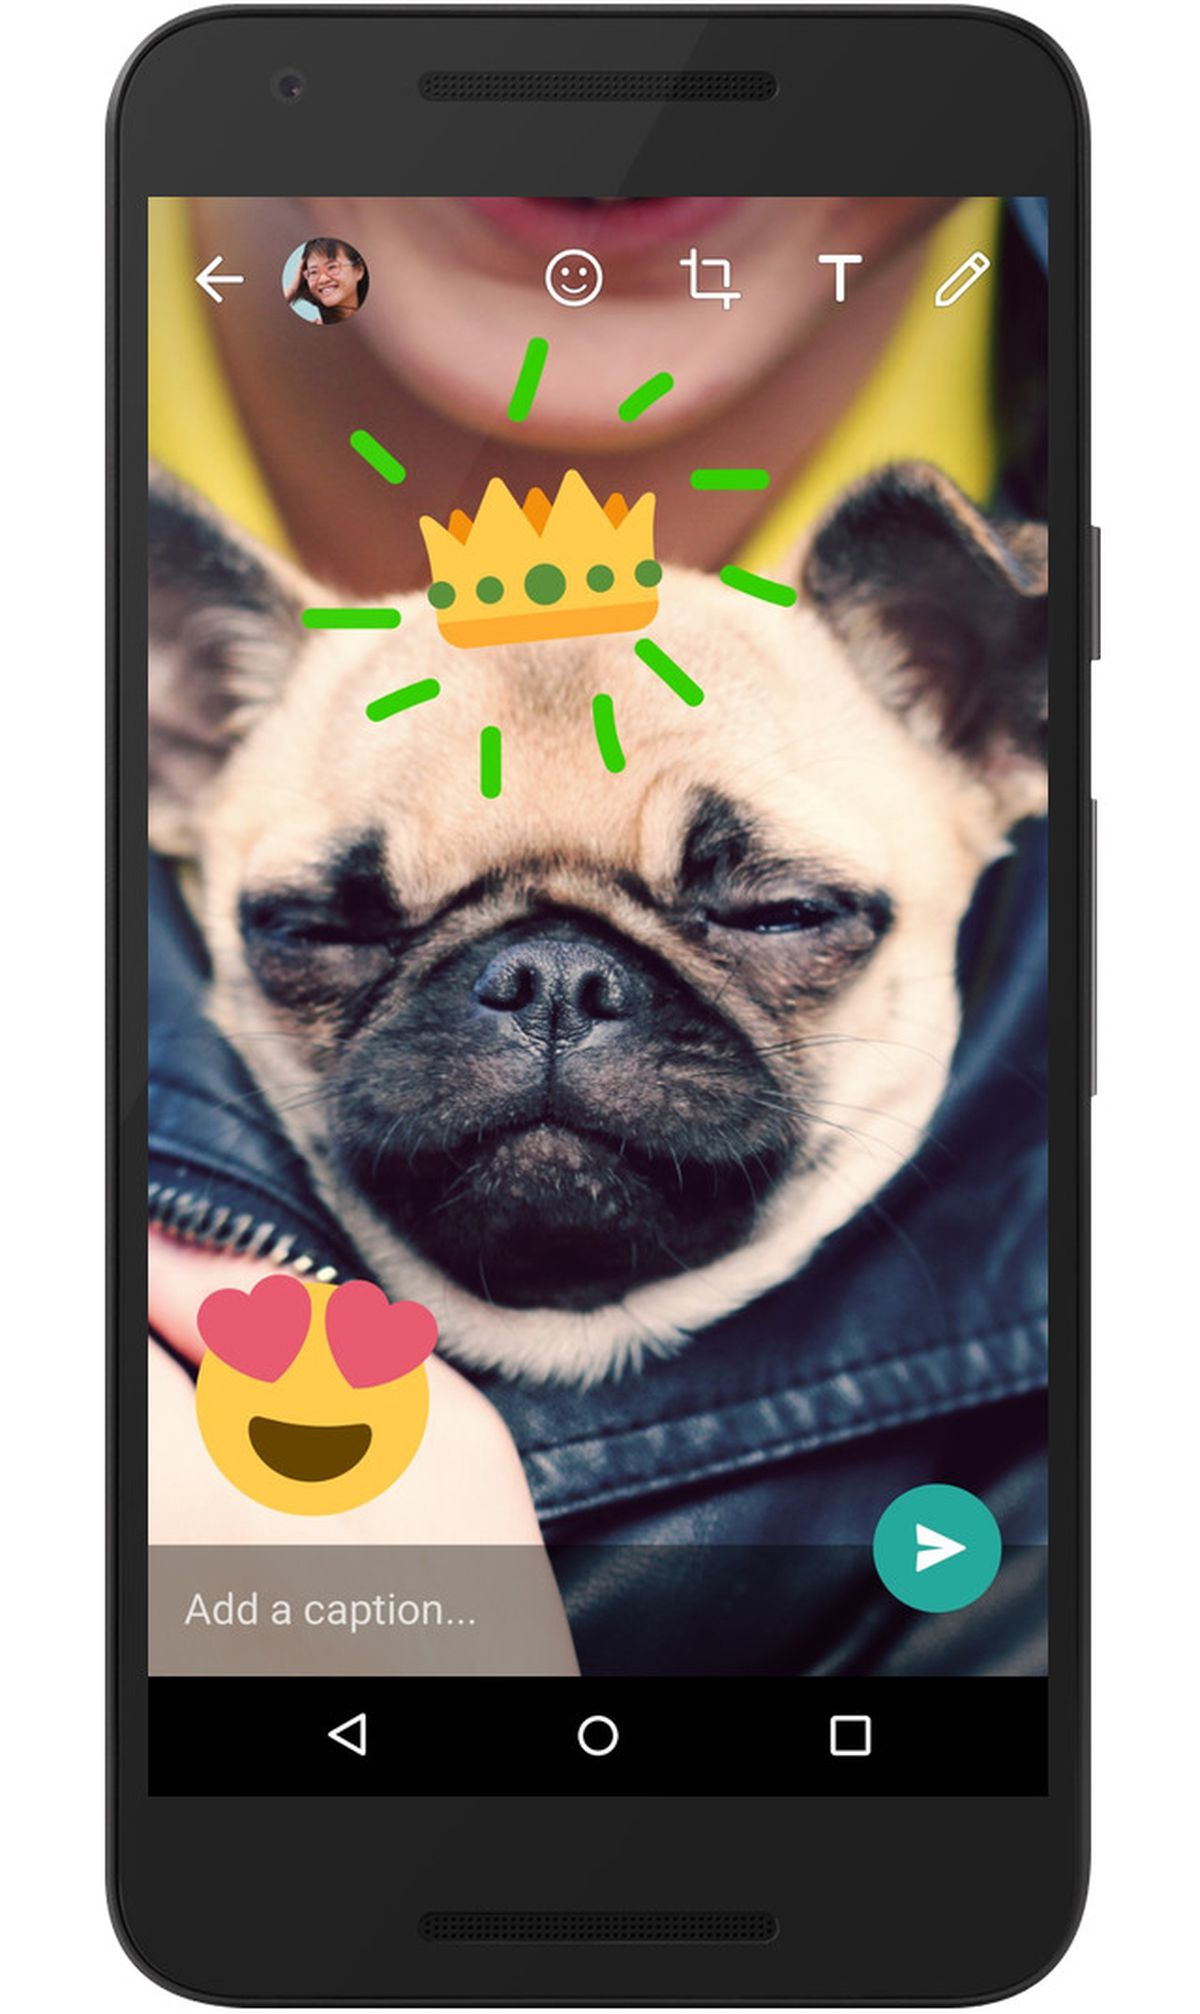 WhatsApp just added a bunch of Snapchat-style camera features